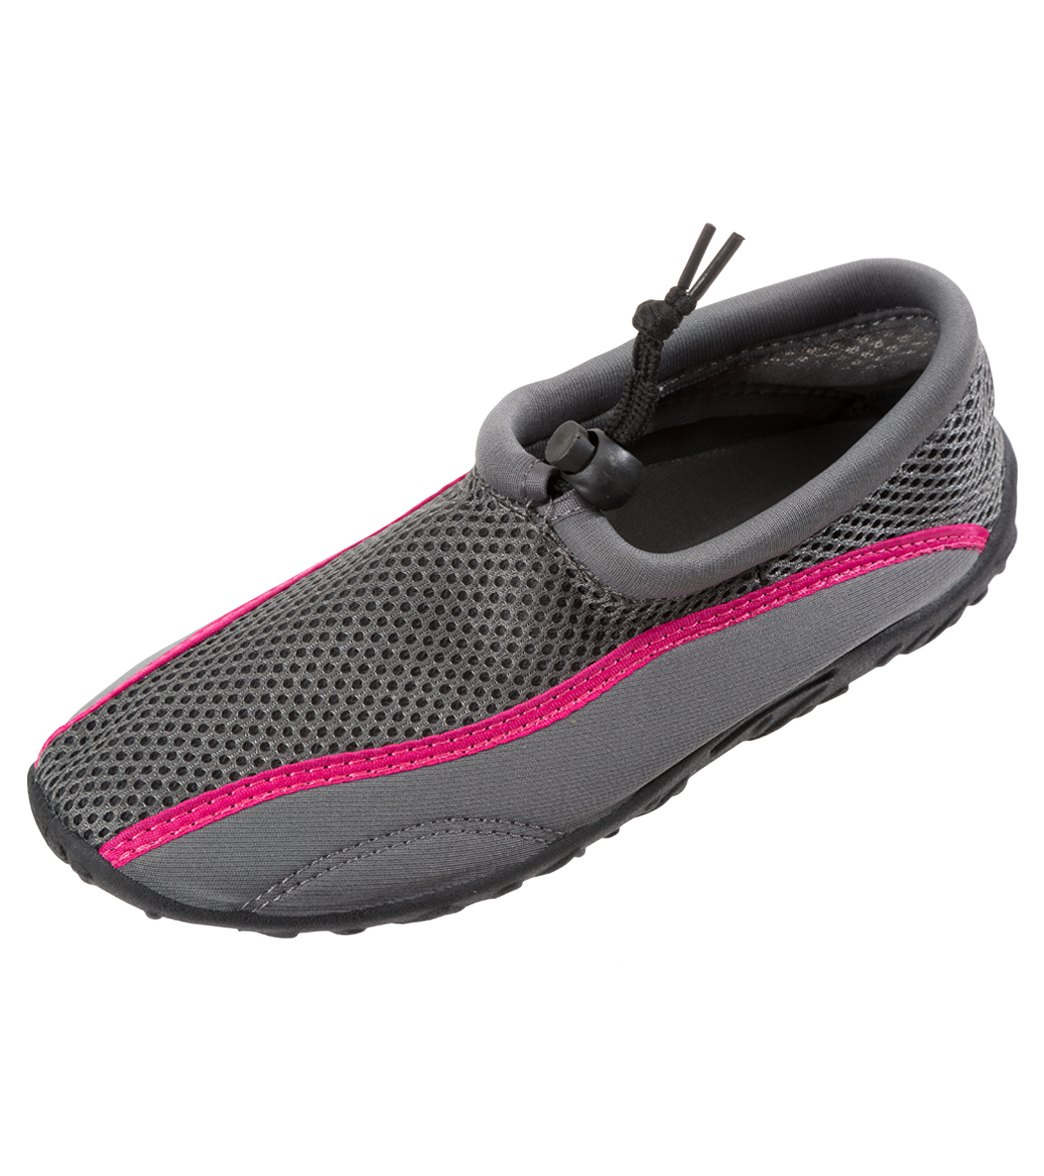 0b869a95900c Sporti Women s Adjustable Water Shoes at SwimOutlet.com